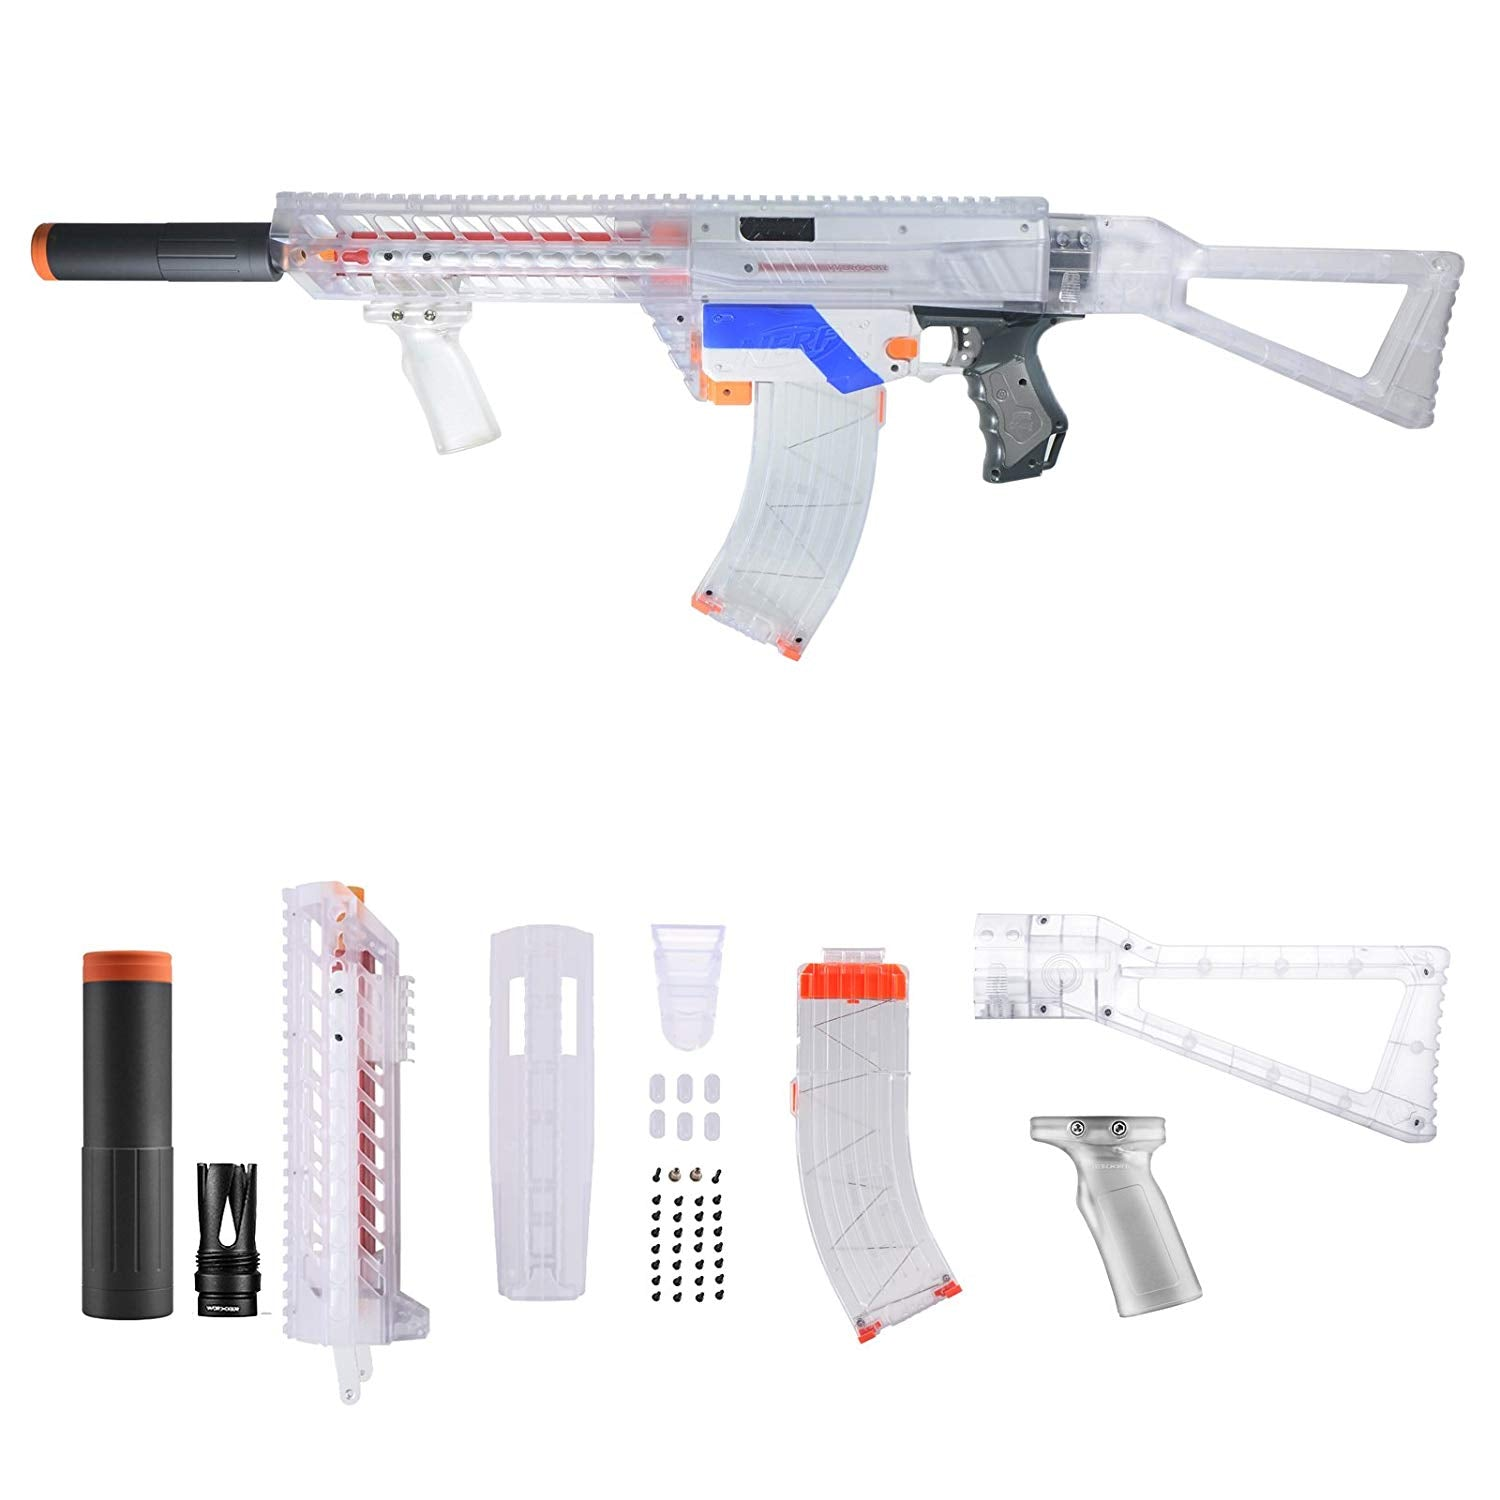 JGCWorker F10555 Pump Kits Clear Body Cover Combo 6 Items For Nerf Retaliator Blaster Modify Toy (Blaster not included) - Nerf Mod Kits -Worker Mod Kits